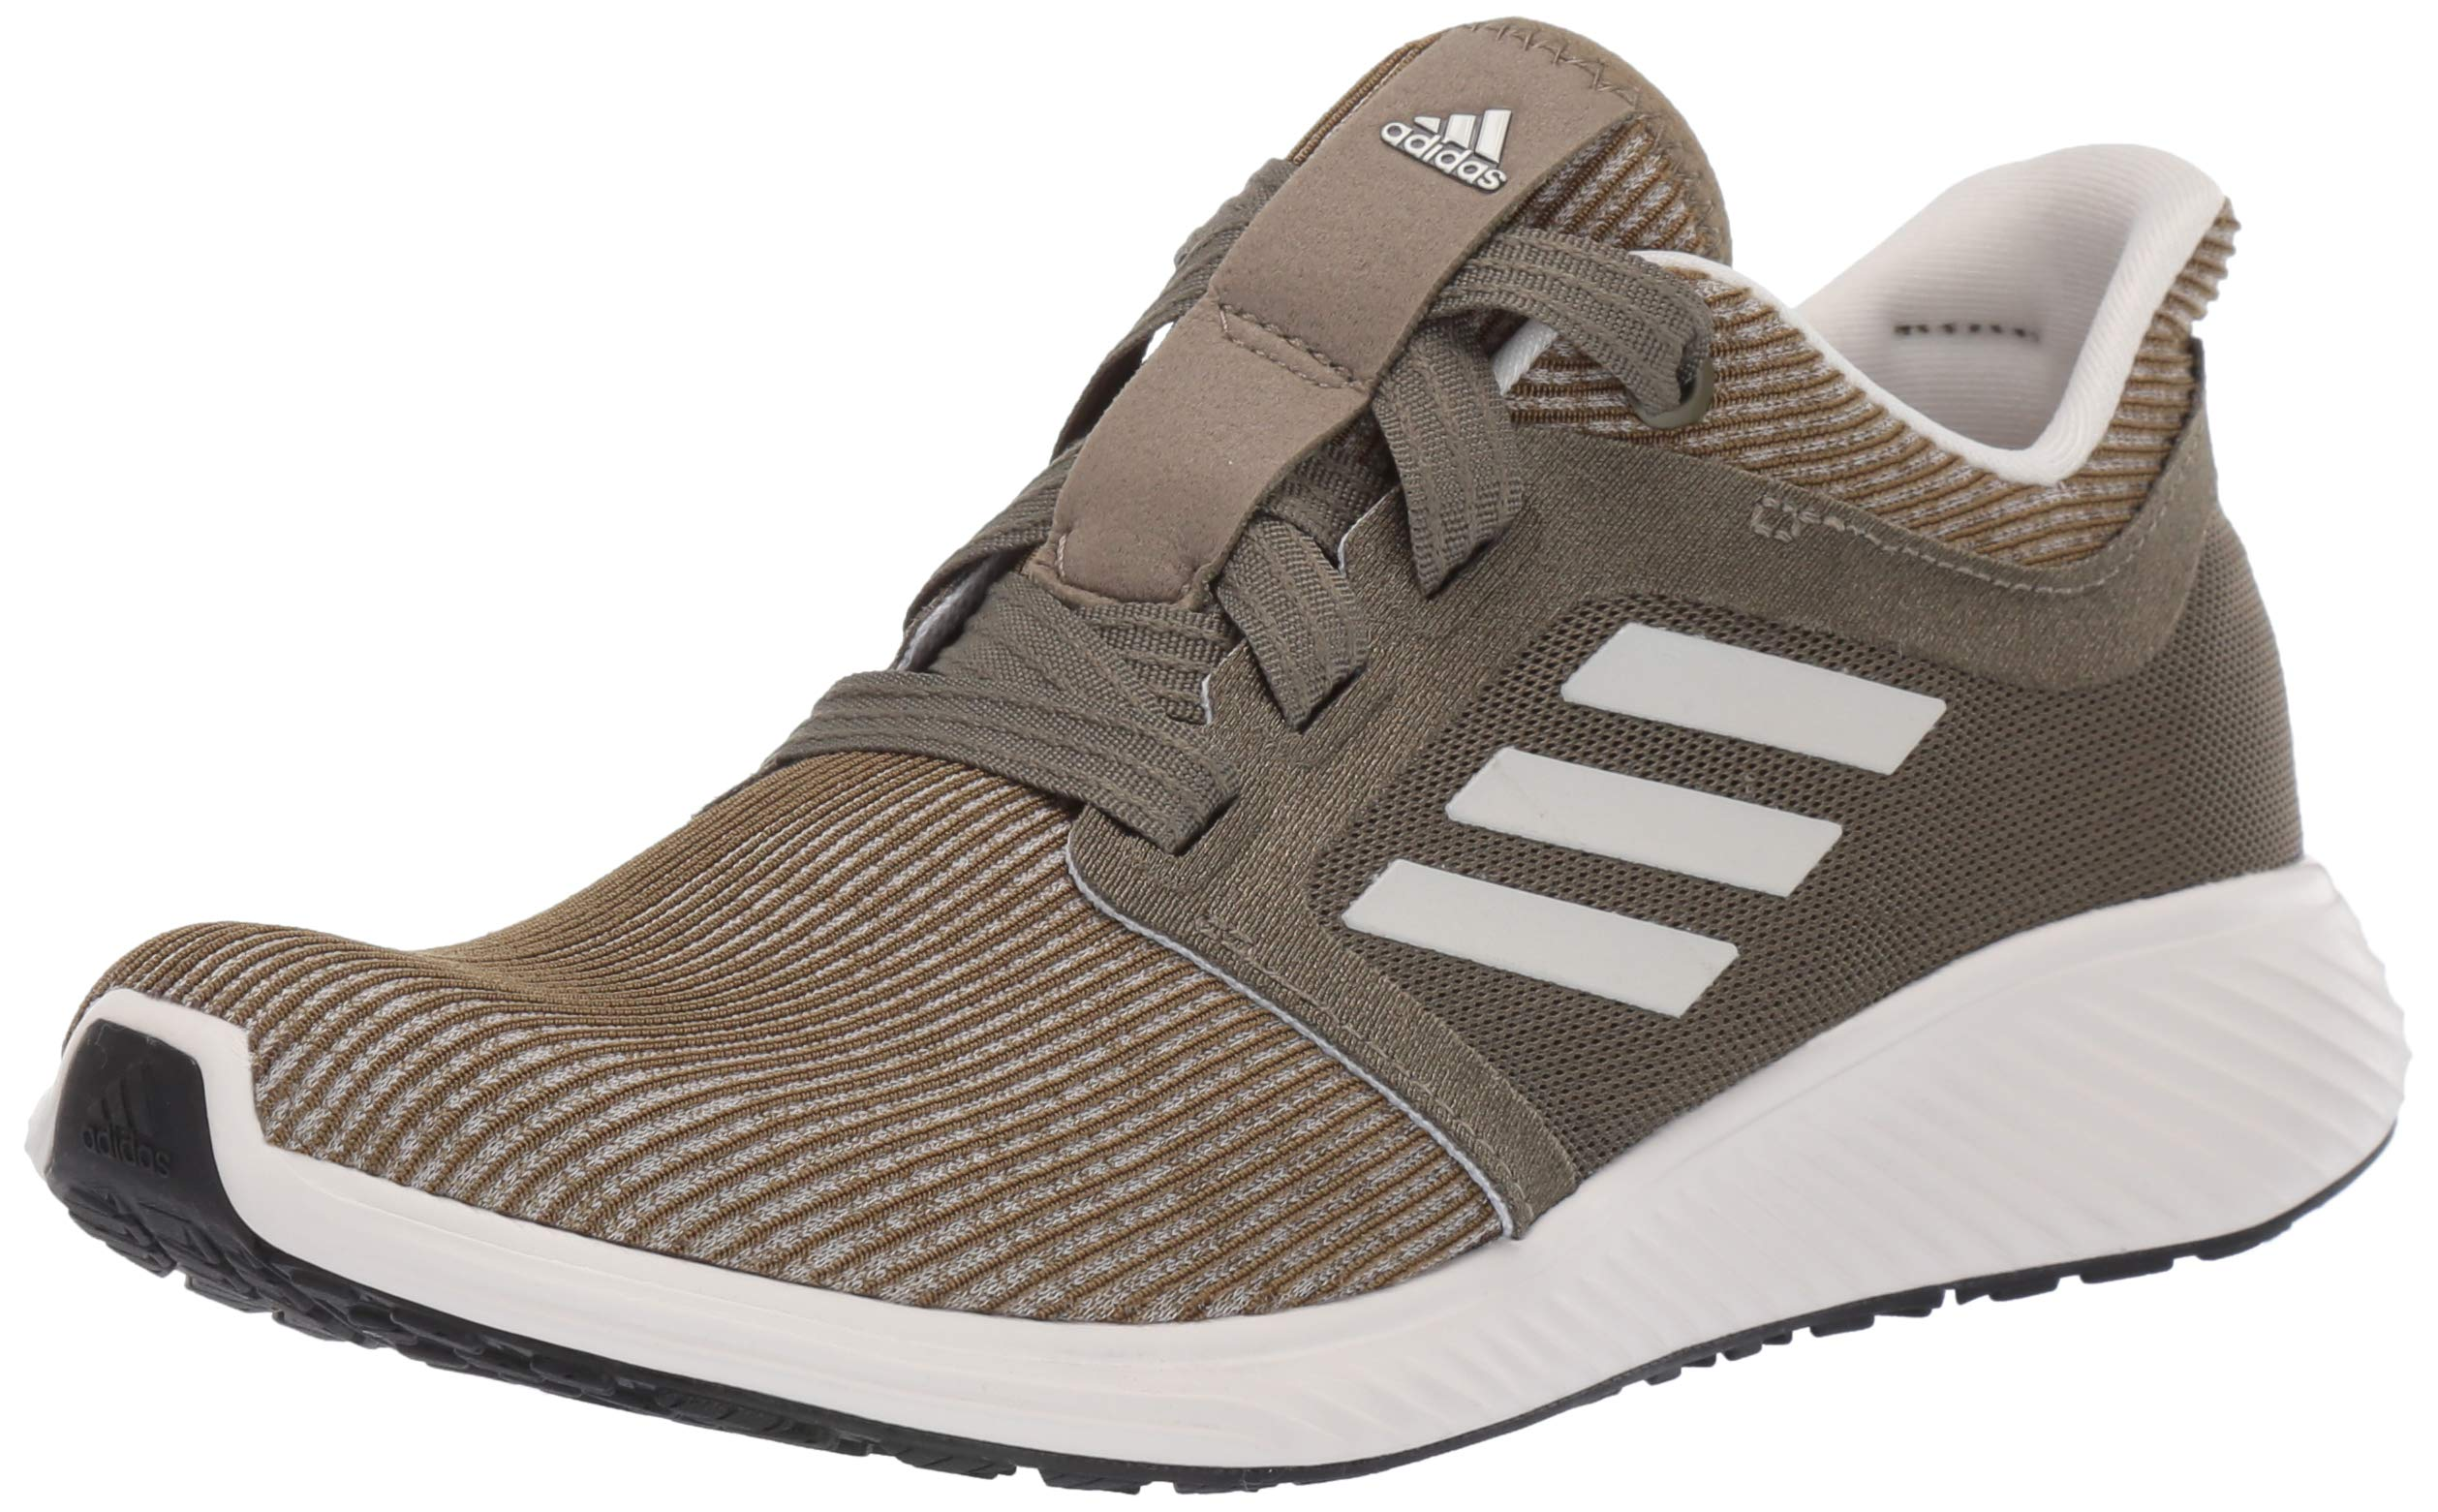 adidas Women's Edge Lux 3, Khaki/raw White/Yellow, 6 M US